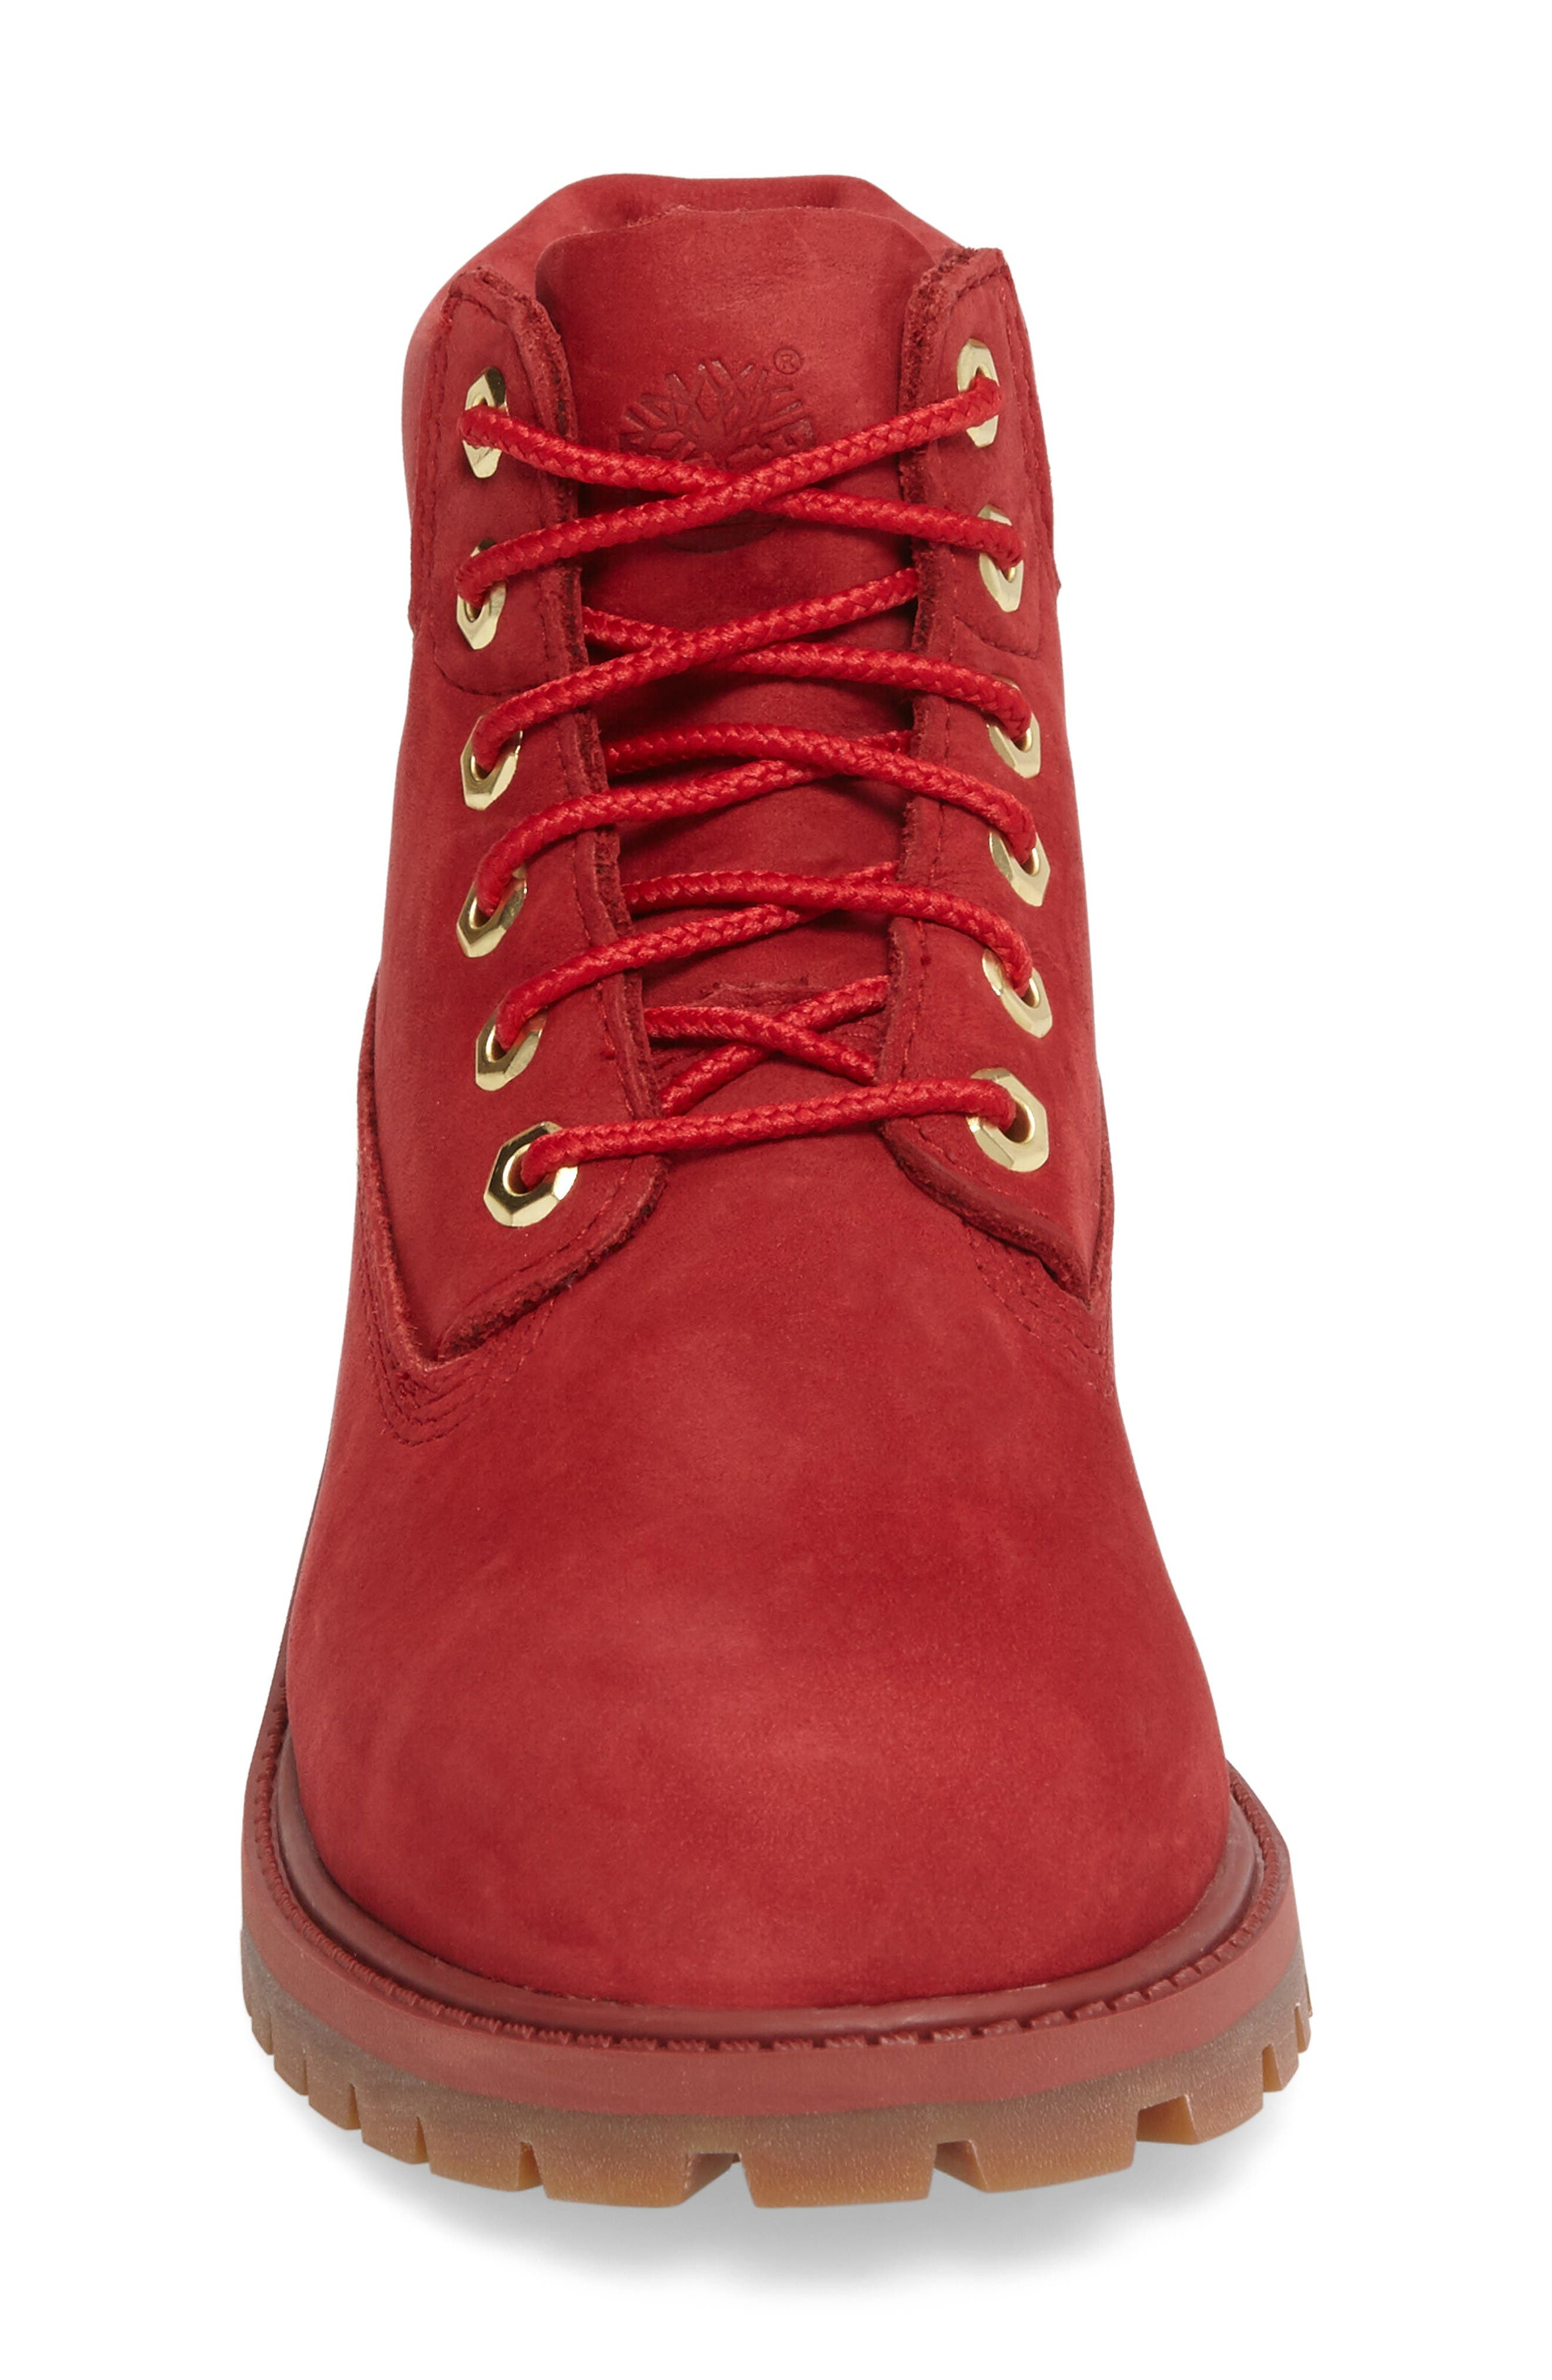 40th Anniversary Ruby Red Waterproof Boot,                             Alternate thumbnail 3, color,                             Ruby Red Waterbuck